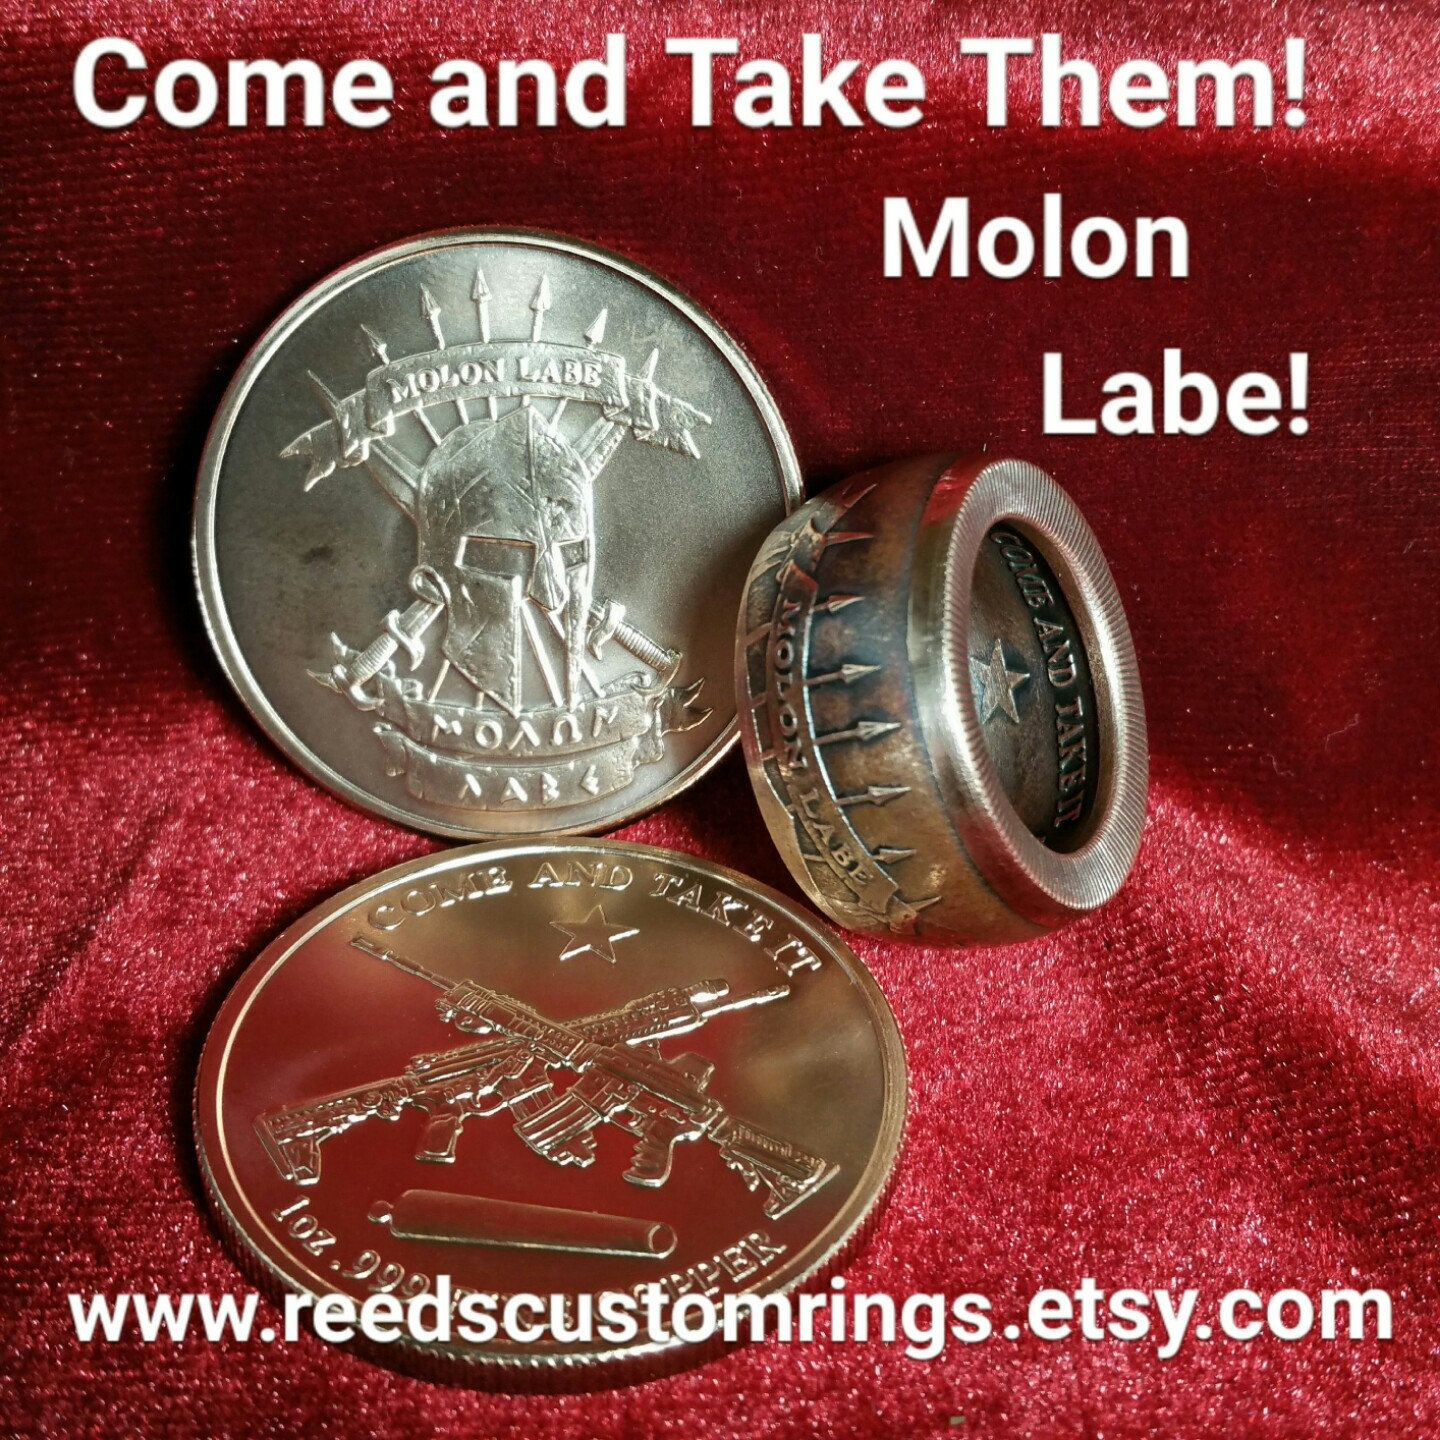 72e0285b6348 Molon Labe - Come and Take Them Pure Copper Rings - Hand Forged from a 1 oz  .999 Pure Copper Coin   www.reedscustomrings.etsy.com  molonlabe ...